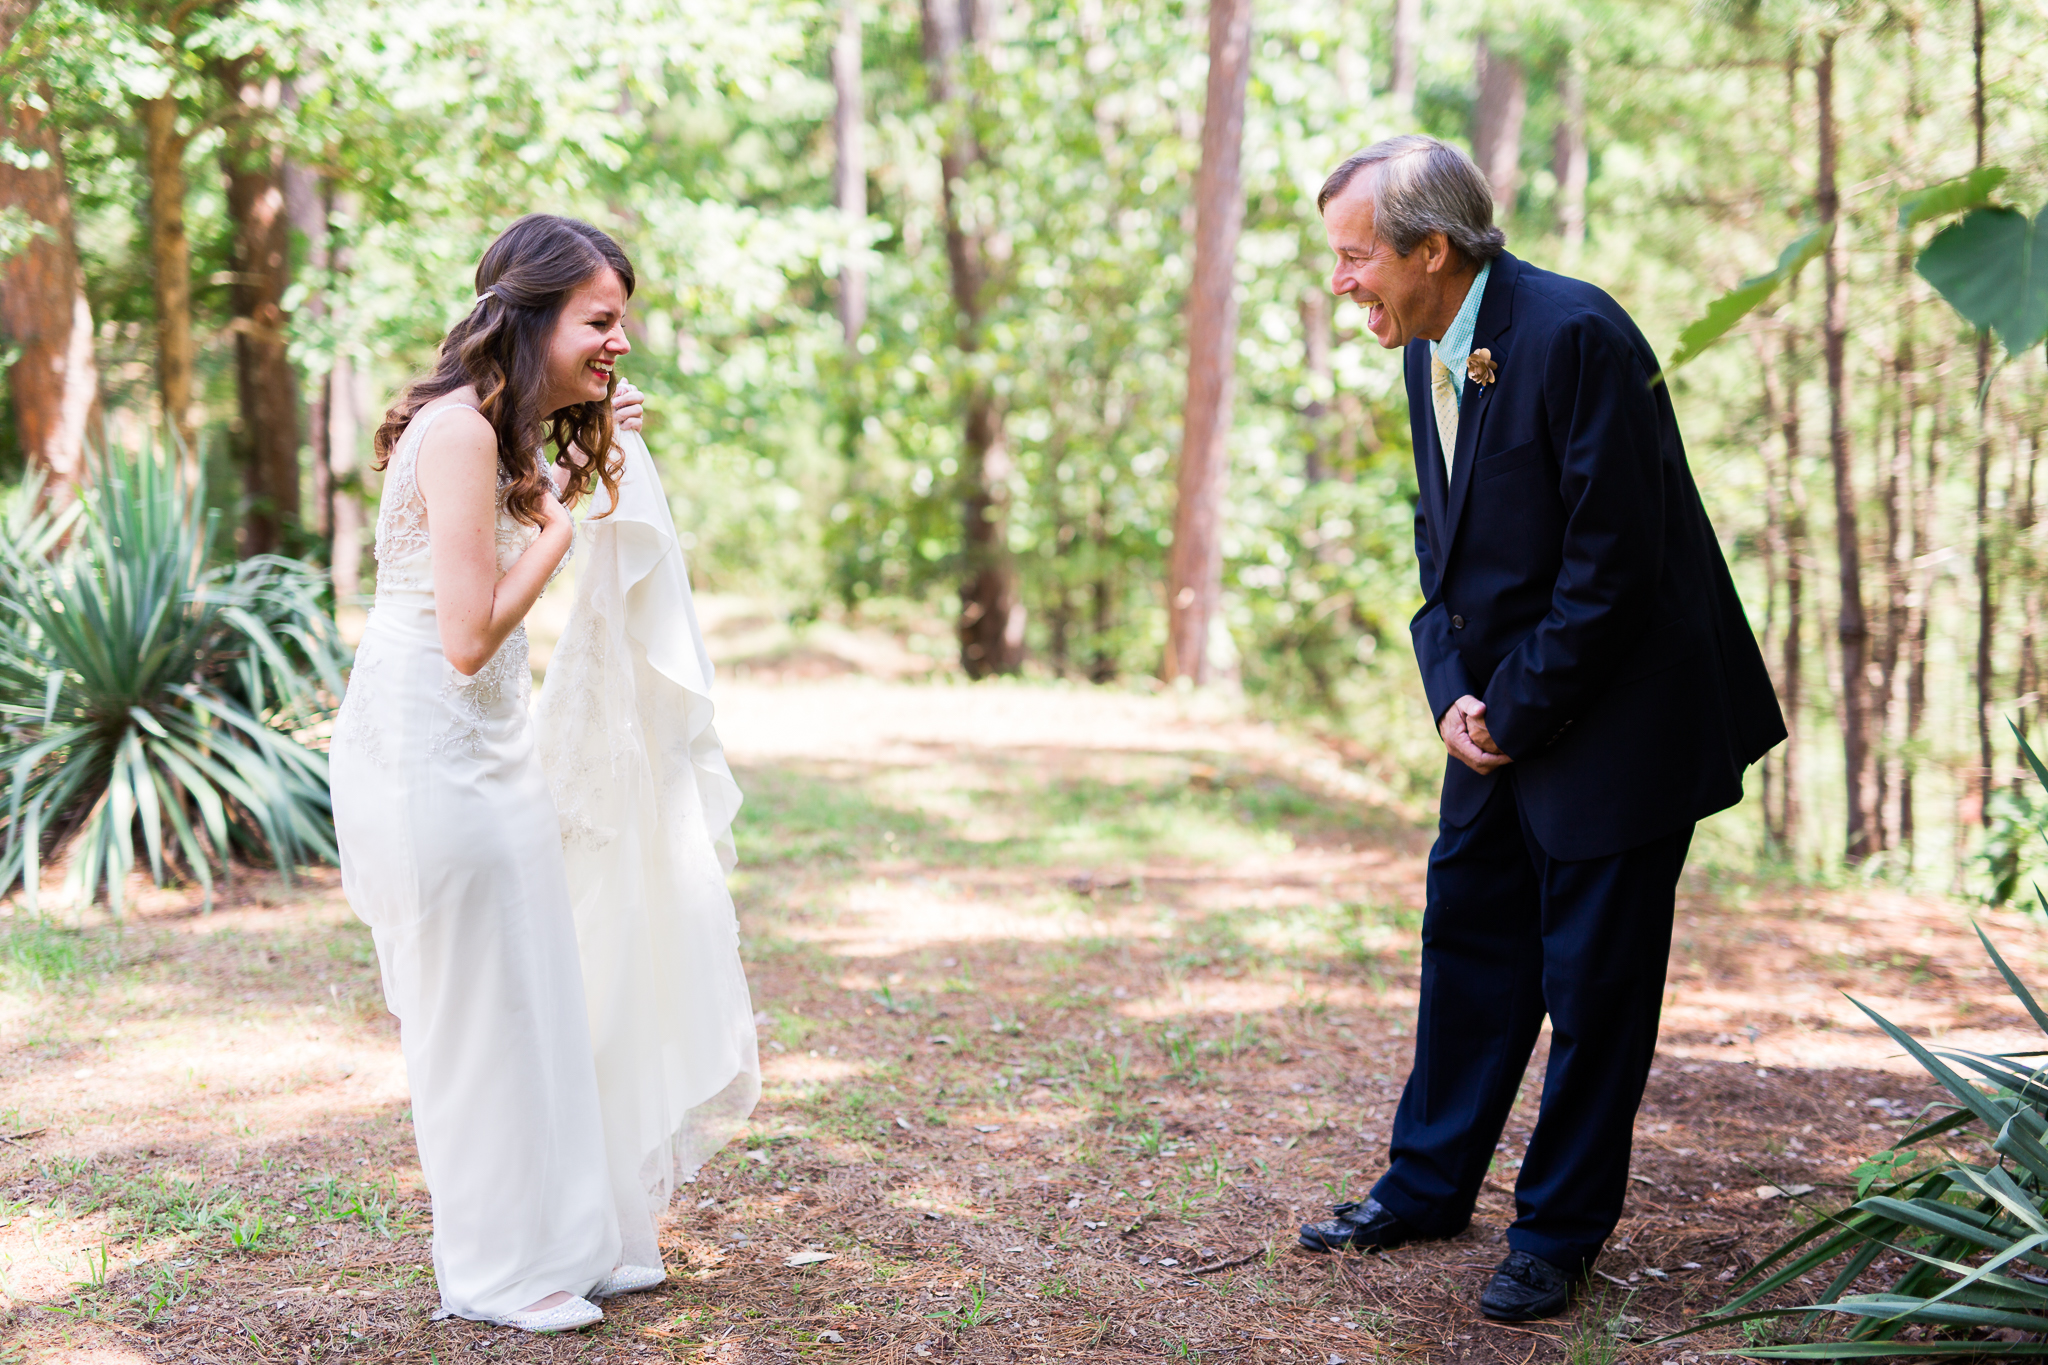 eureka springs wedding photographer thorncrown chapel daddy daughter first look